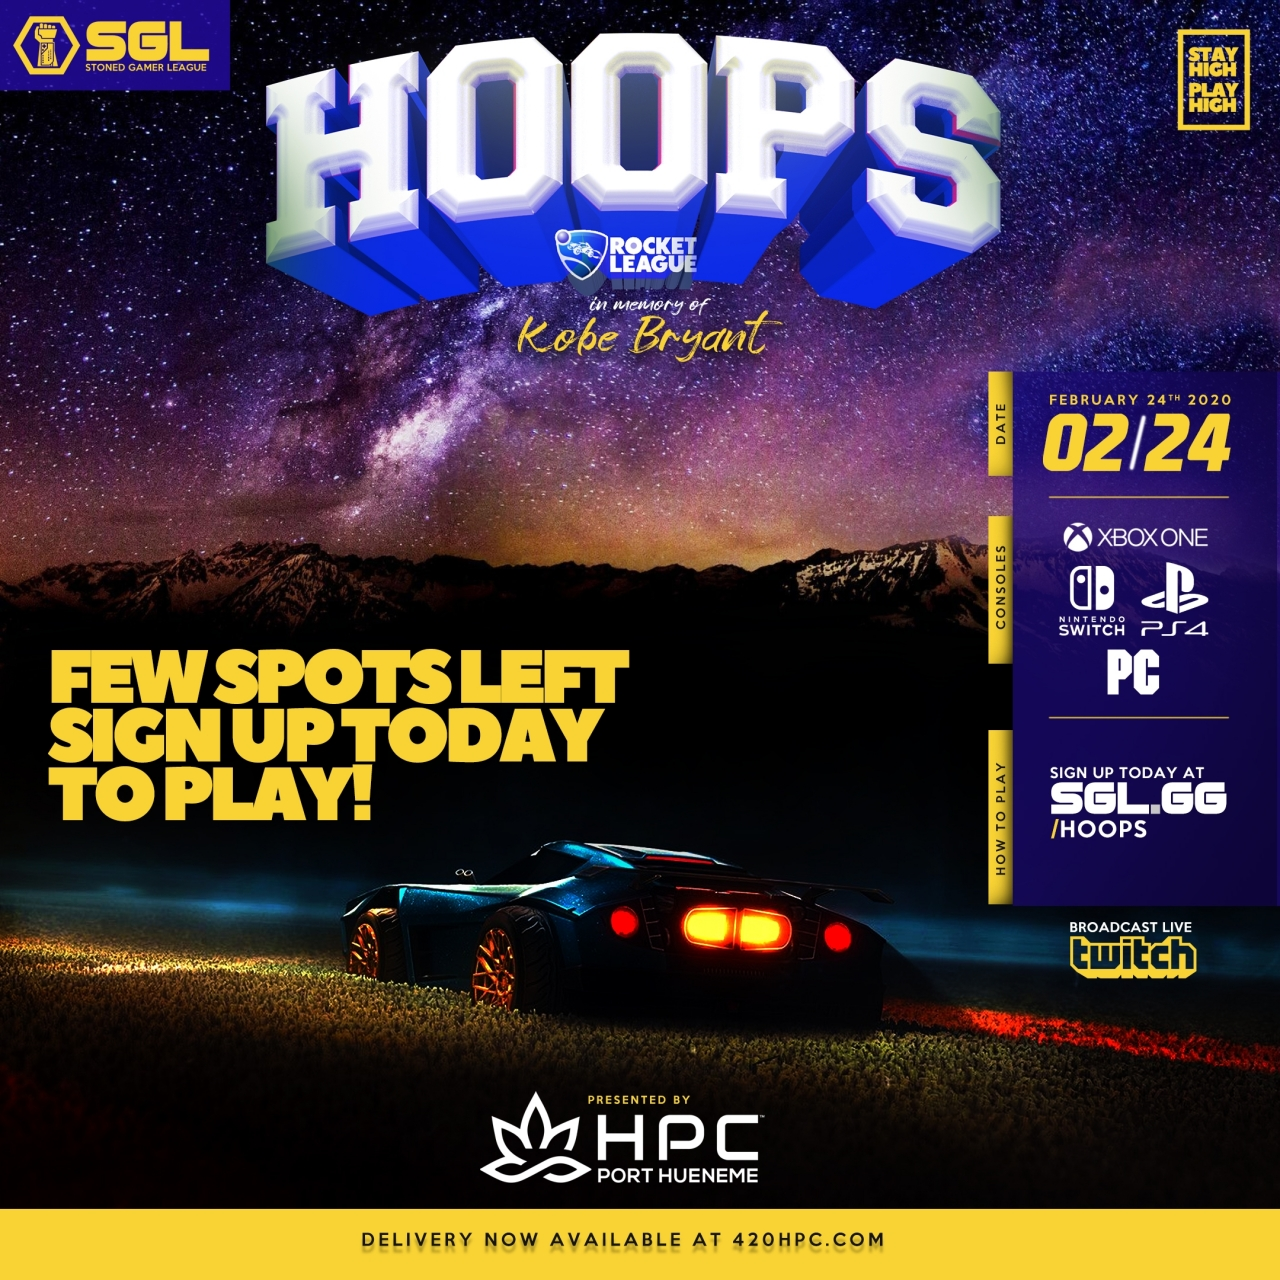 HOOPS-sign-up-again